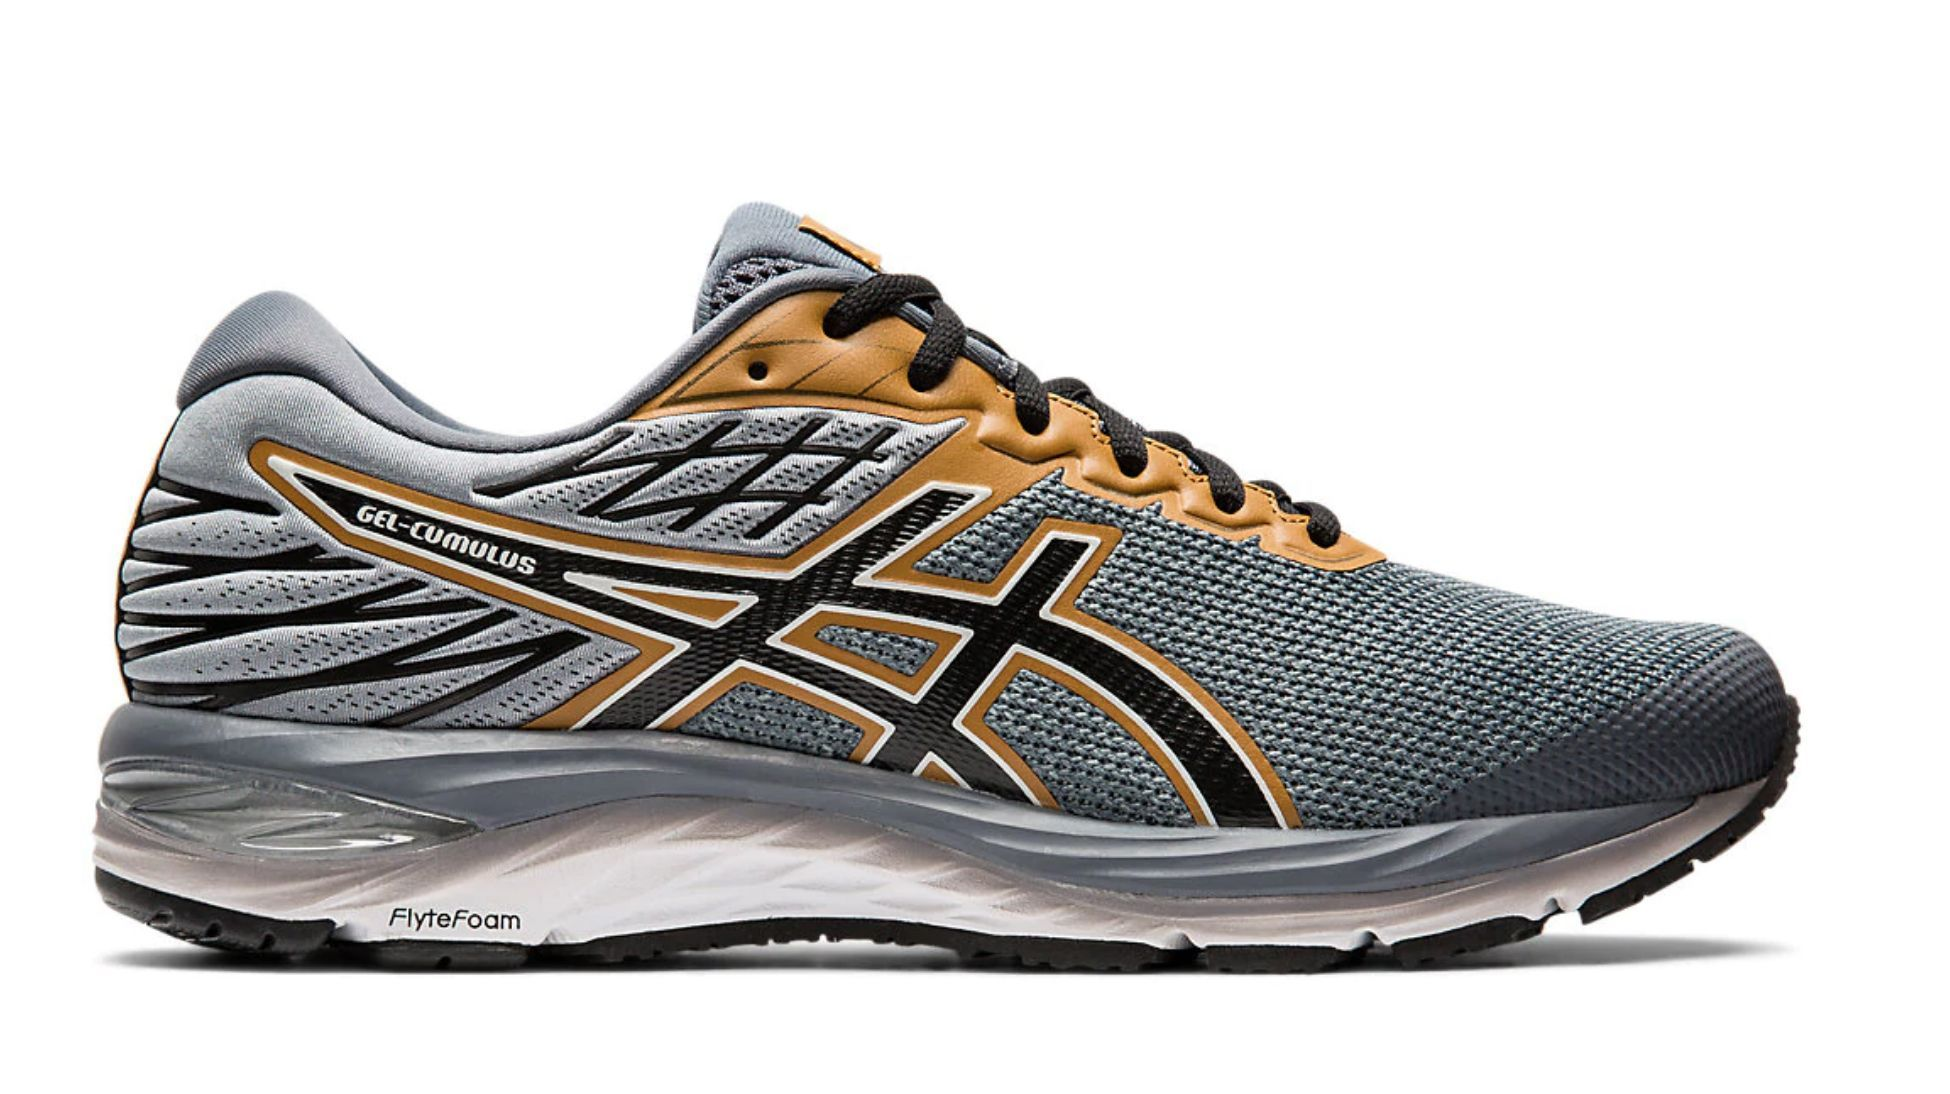 8 Best ladies running shoes images | Running shoes, Shoes